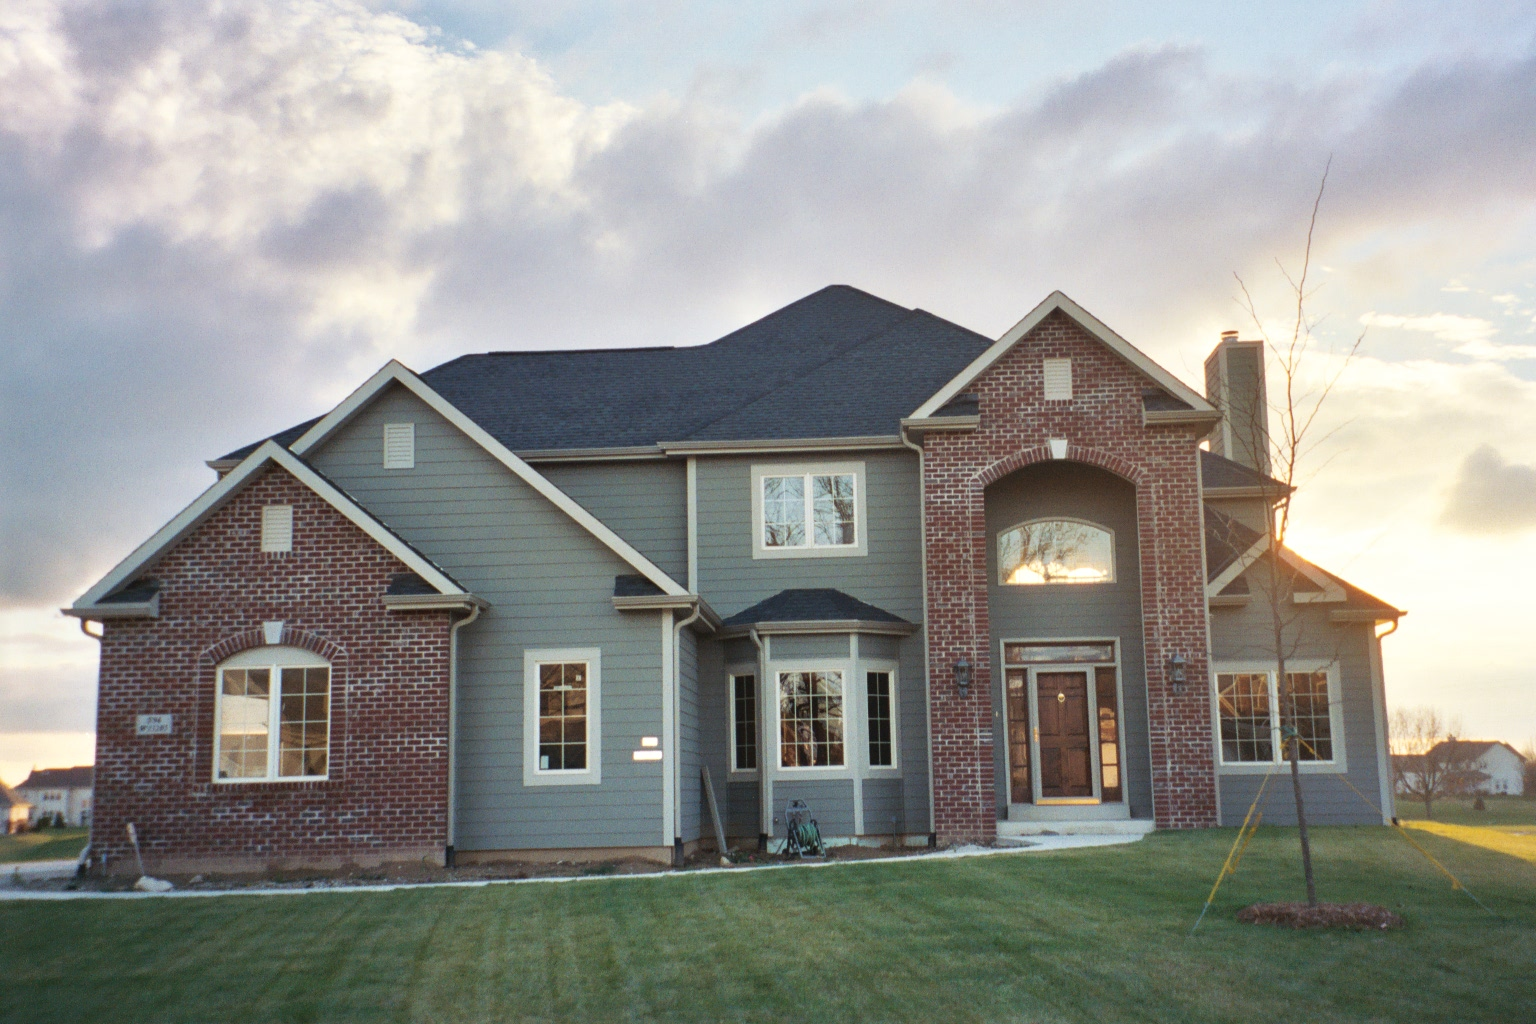 2 Story Home With Brick Entrance Anthony Thomas Builders